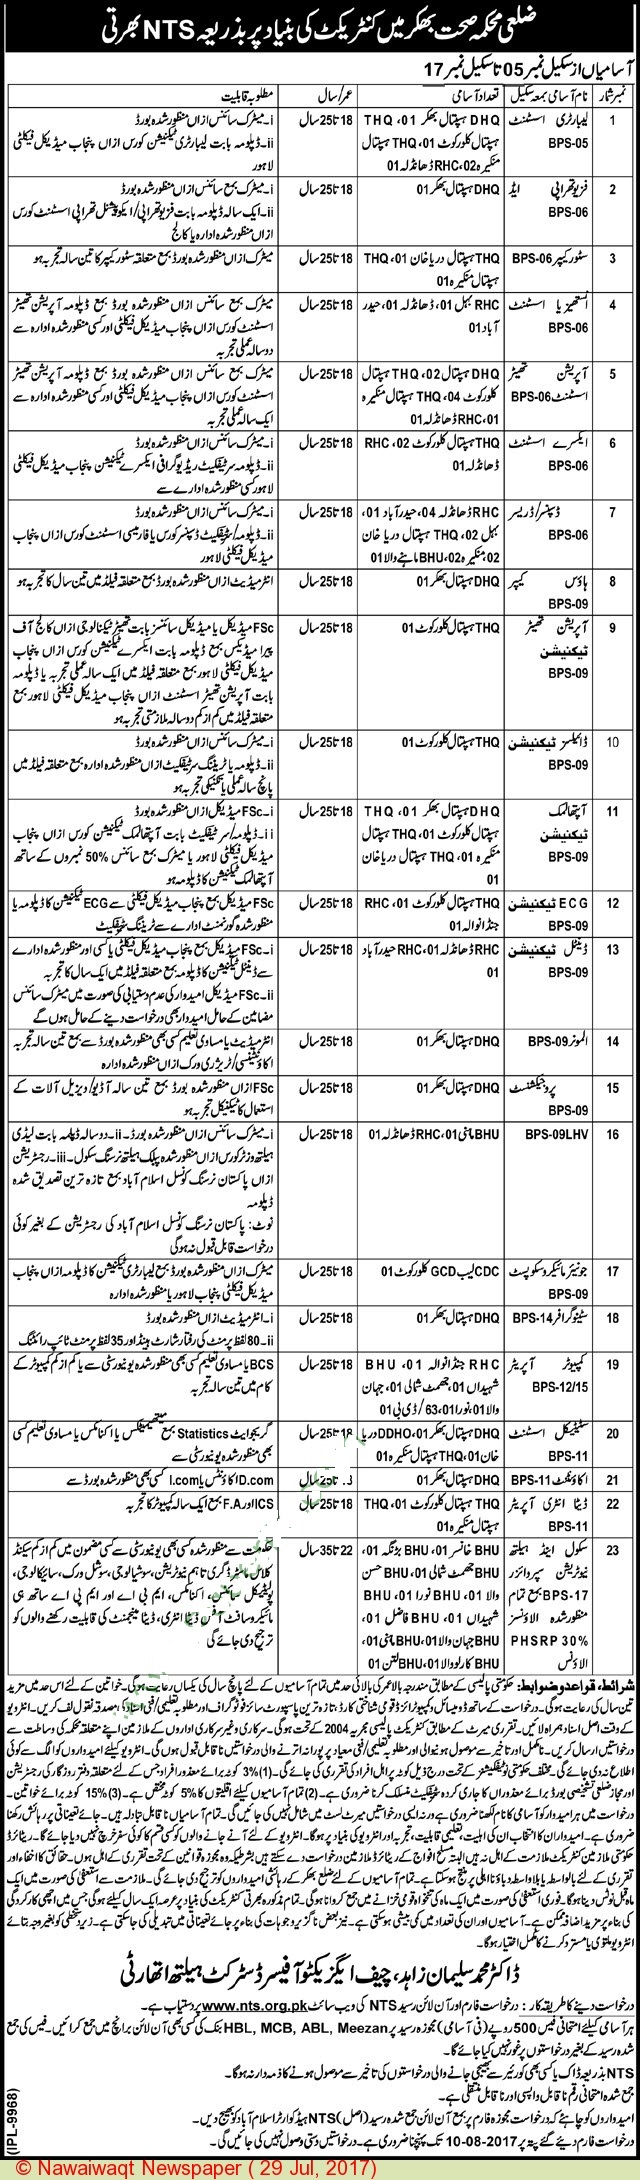 Health Department Bhakkar DHQ and THQ NTS Jobs 2017 Answer Keys & Result